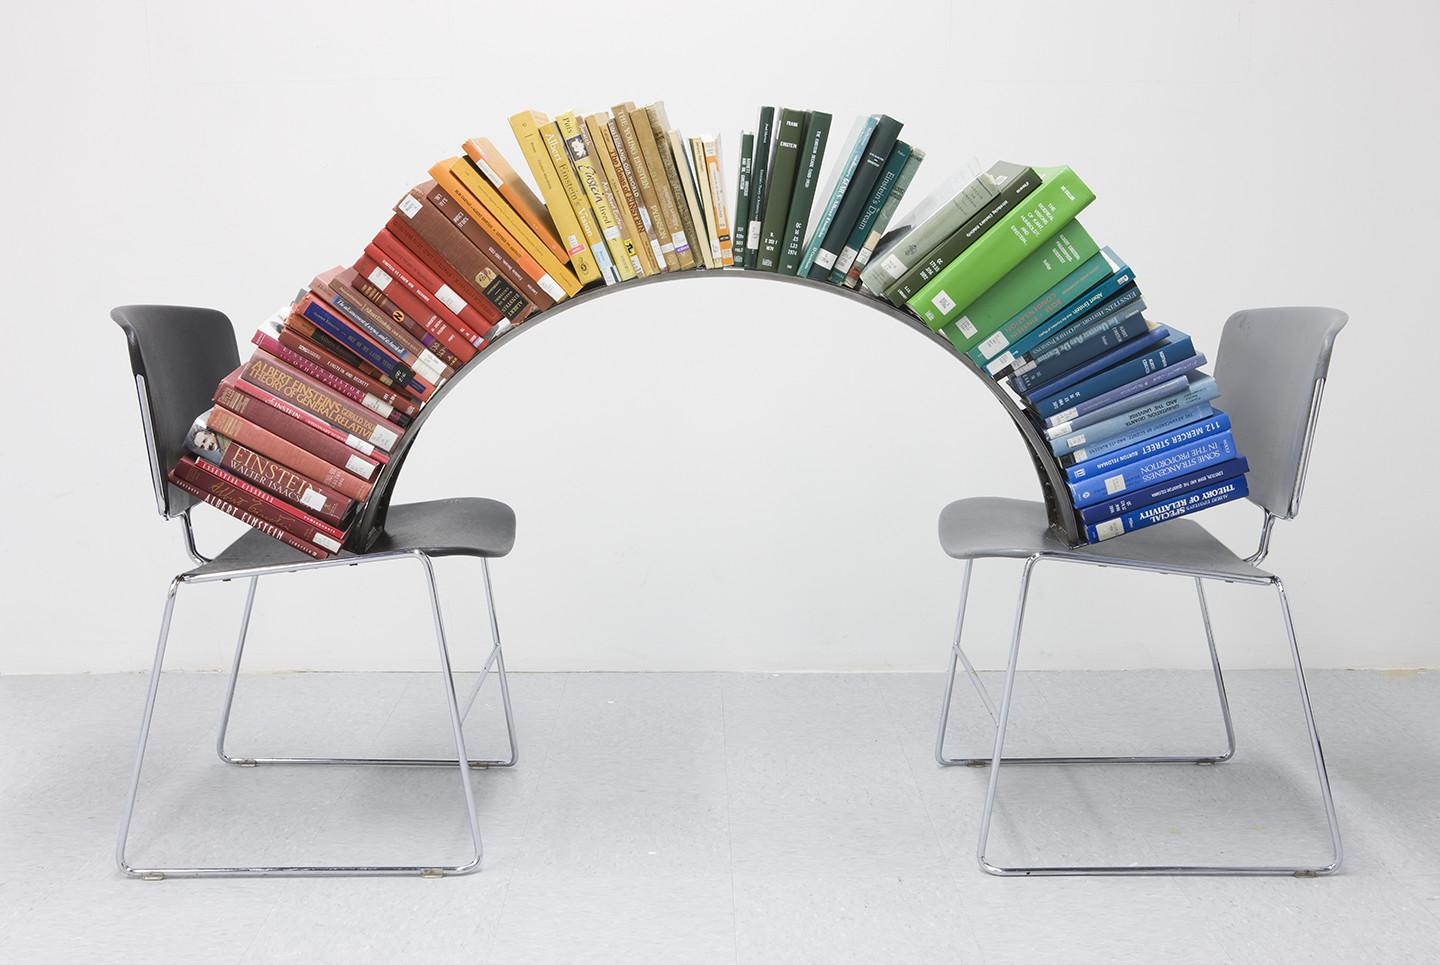 A colorful, curved stack of books reaches from one chair to another.